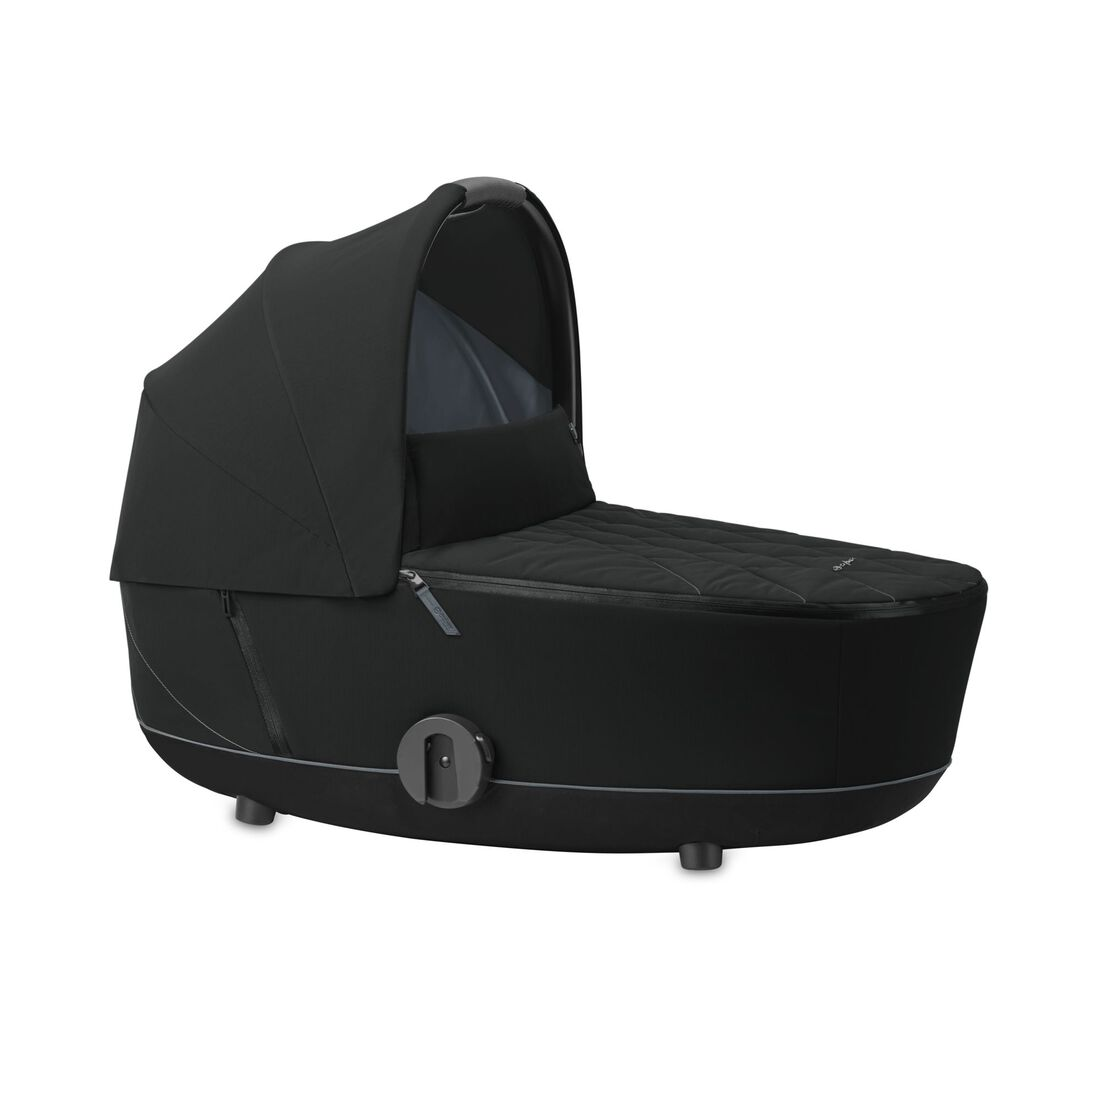 CYBEX Mios Lux Carry Cot - Deep Black in Deep Black large Bild 1